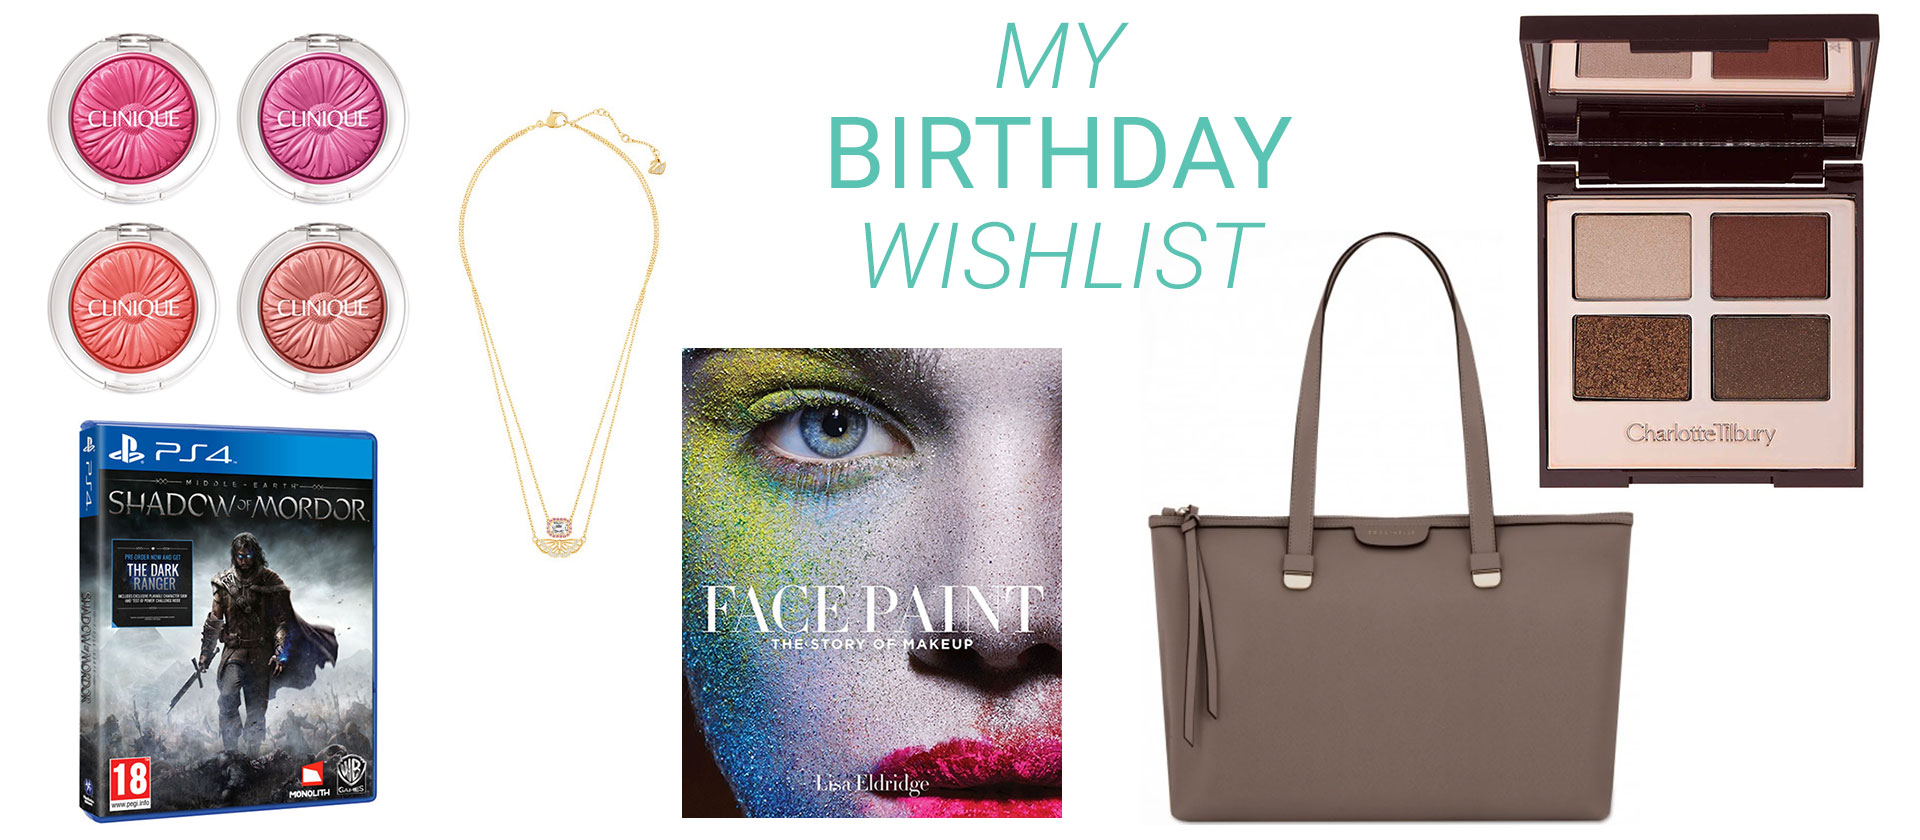 wish-list-for-my-birthday